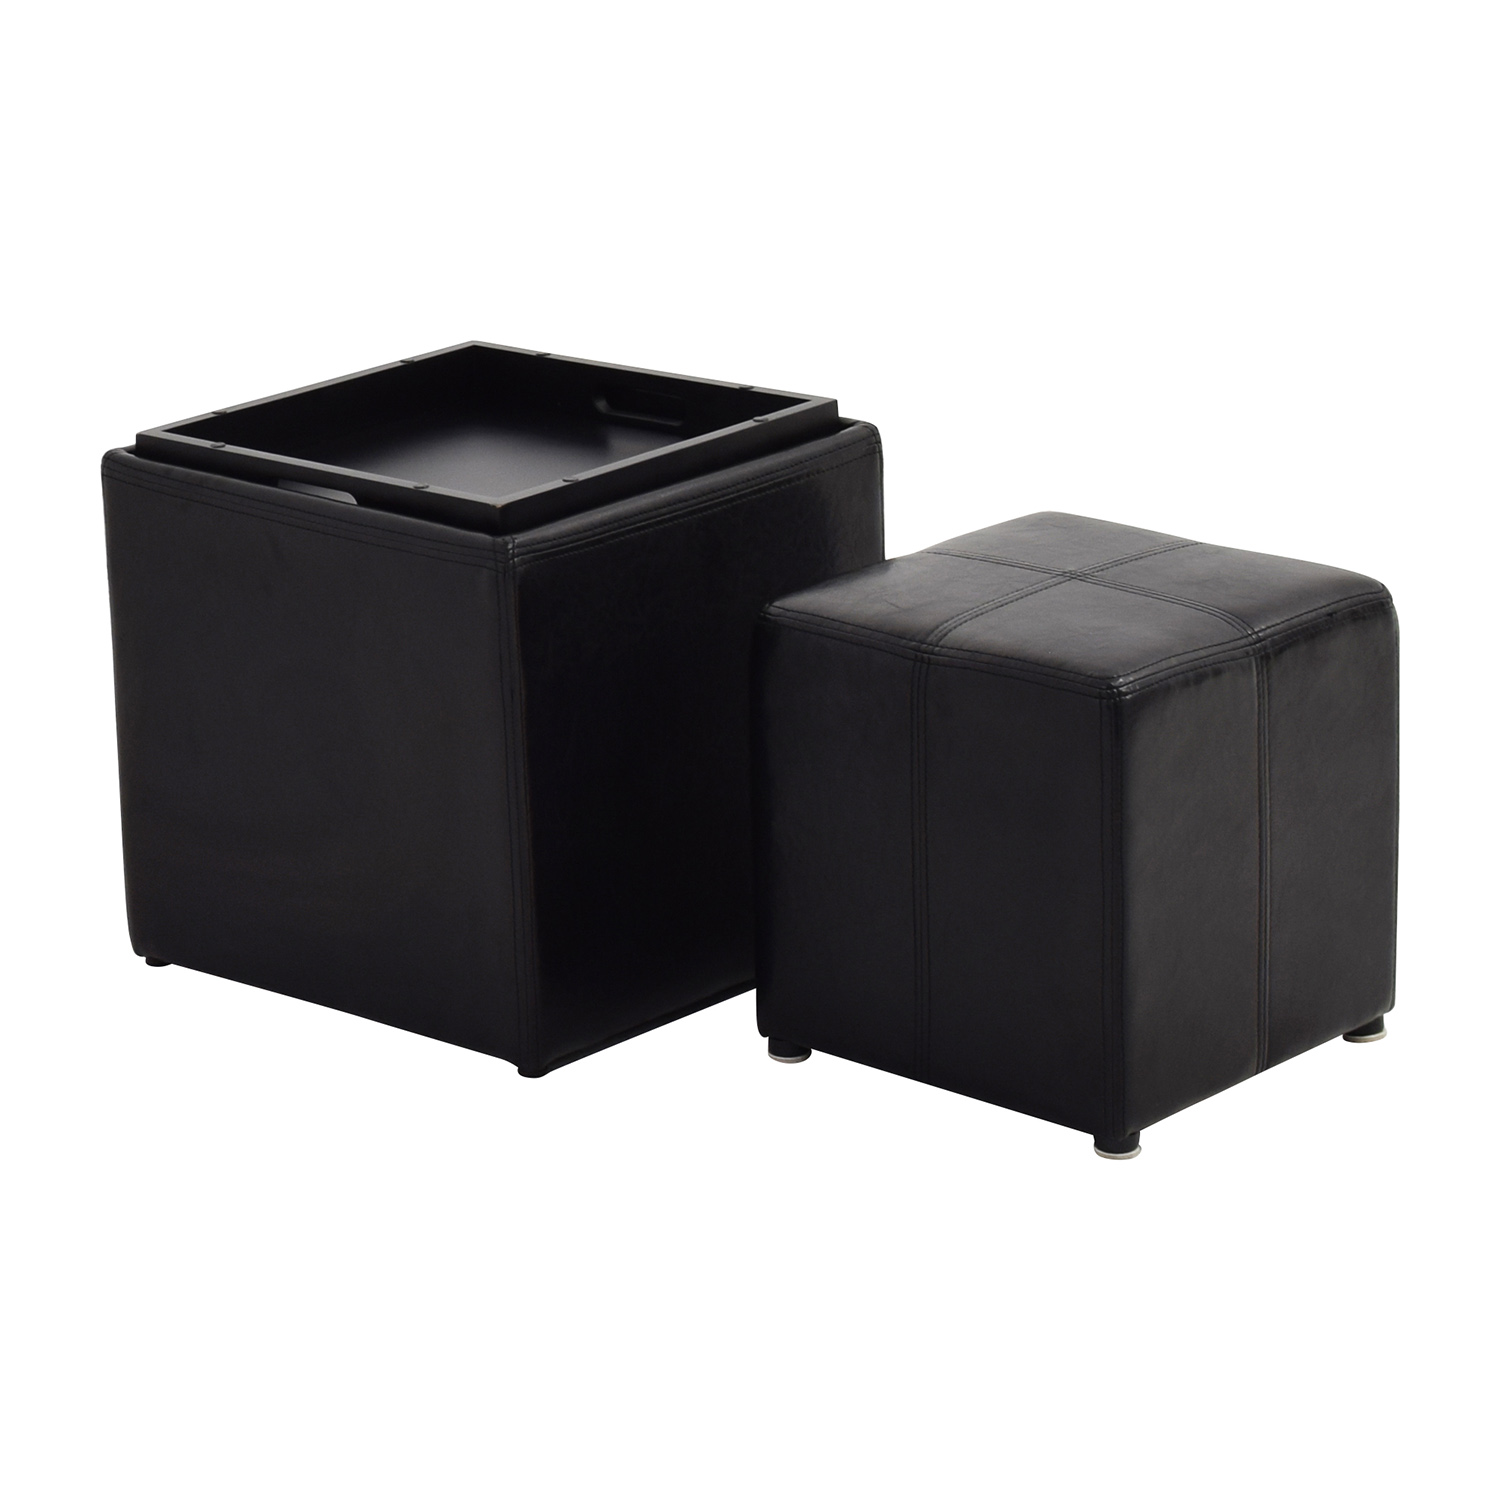 70 Off Black Leather Storage Ottoman With Smaller